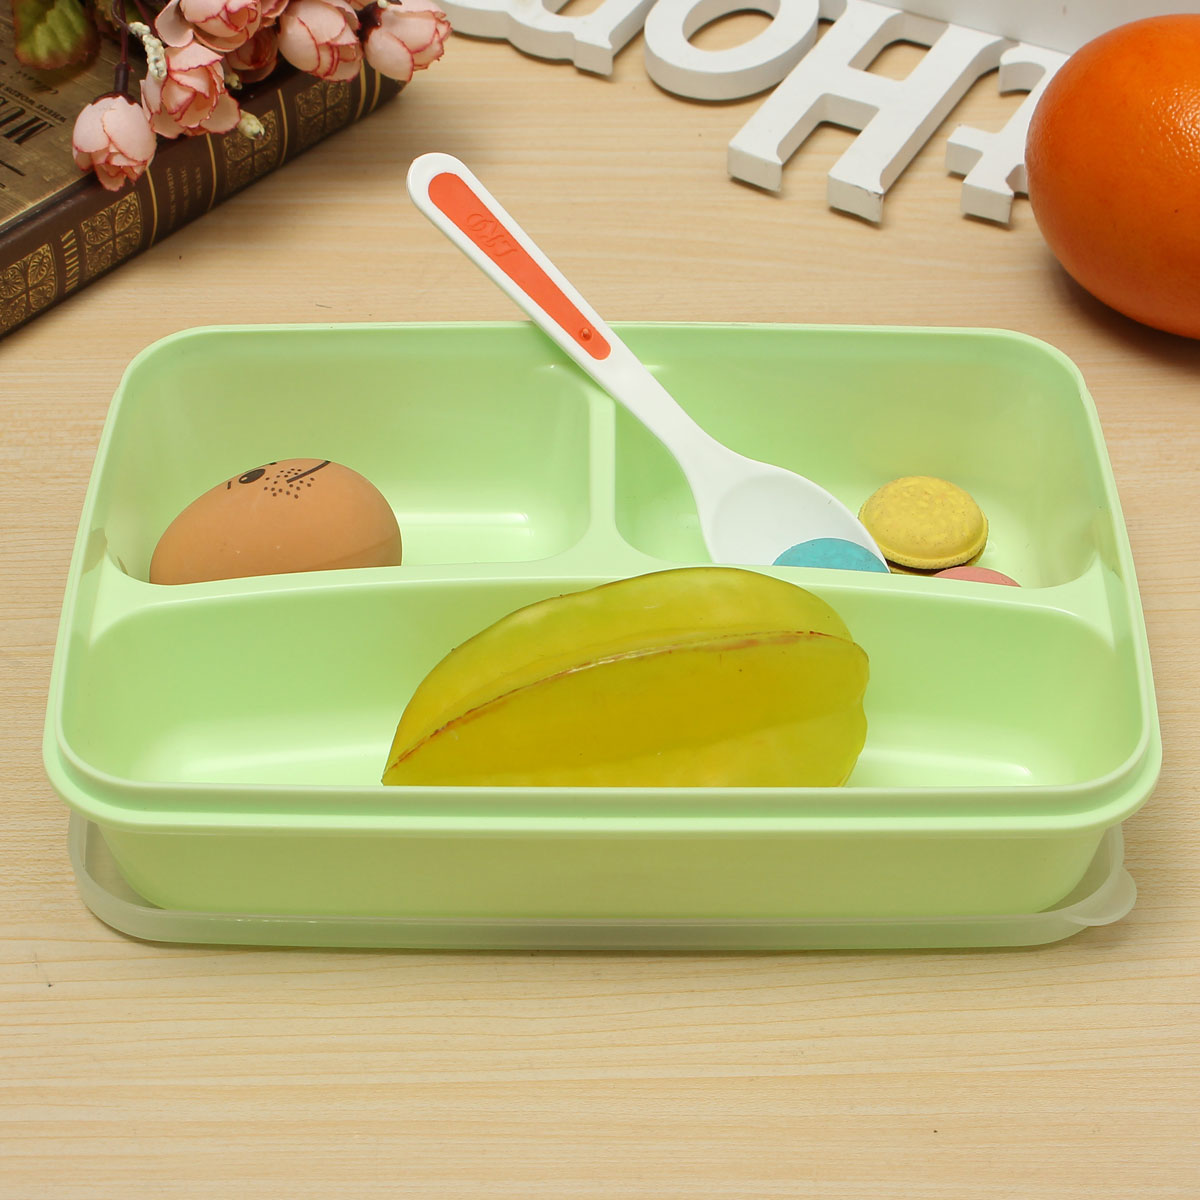 1000ml lunch bento box plastic cartoon lunch box food container bento box ebay. Black Bedroom Furniture Sets. Home Design Ideas